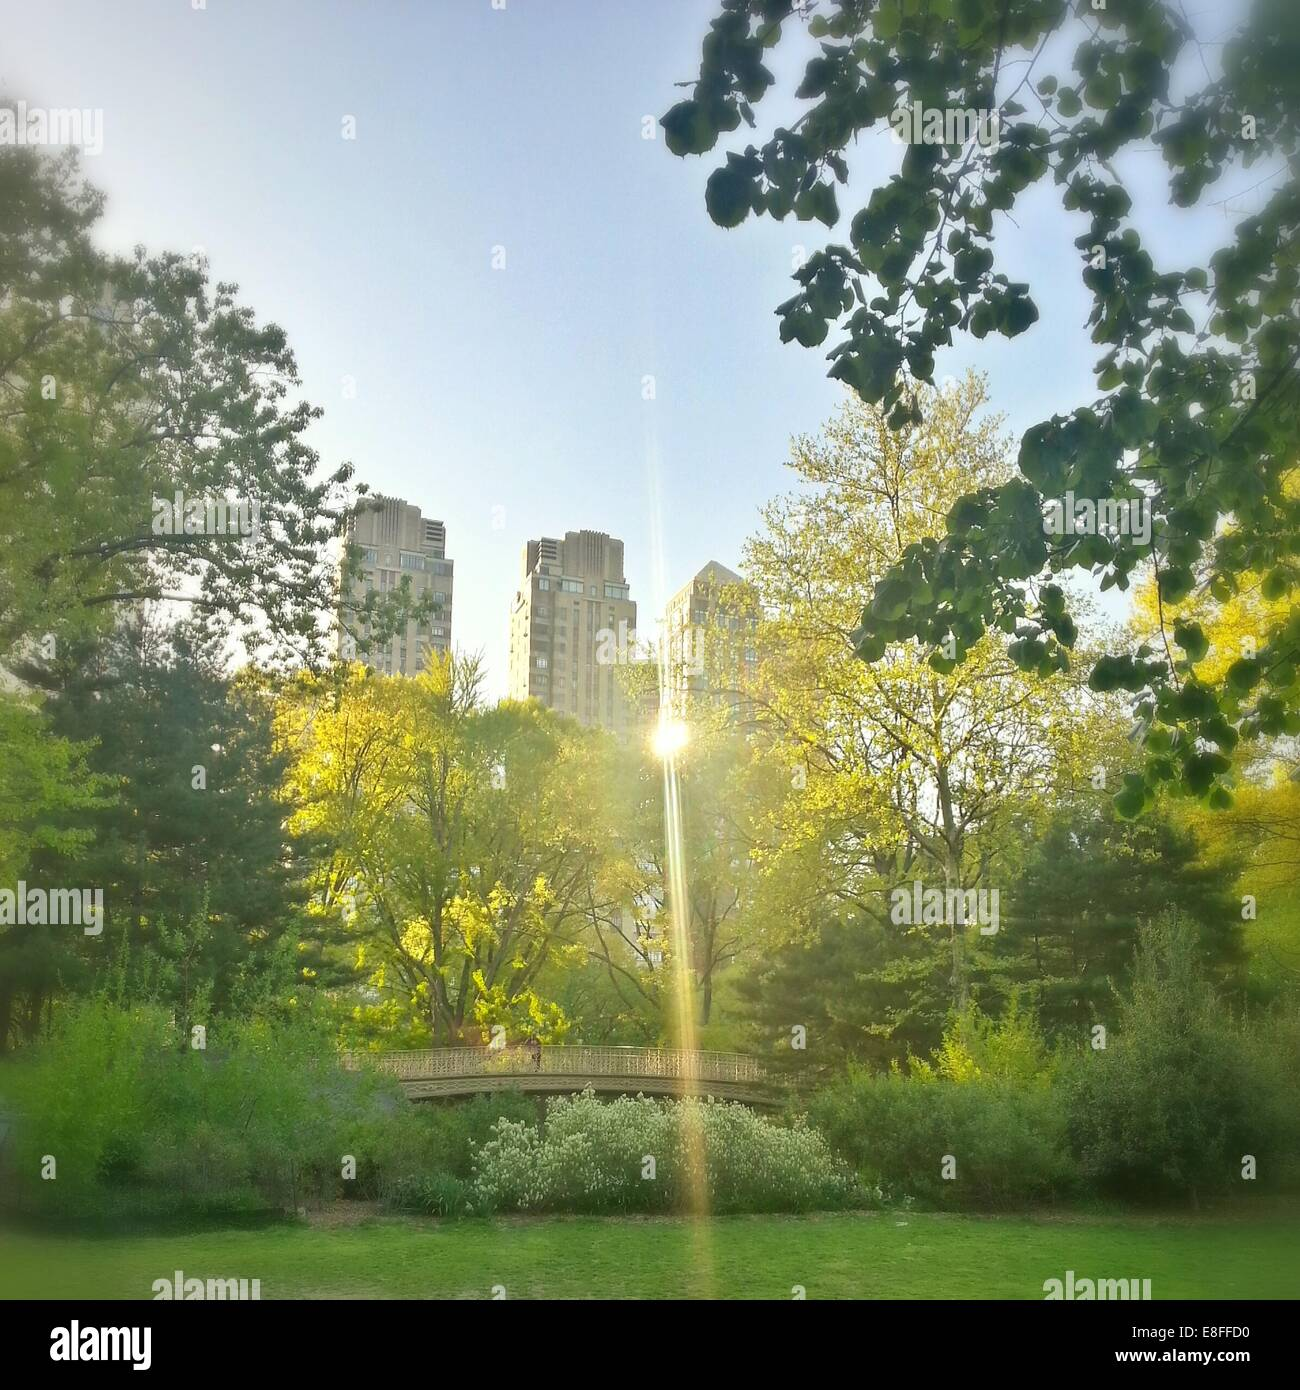 Skyscrapers and Central Park, Manhattan, New York, America, USA - Stock Image